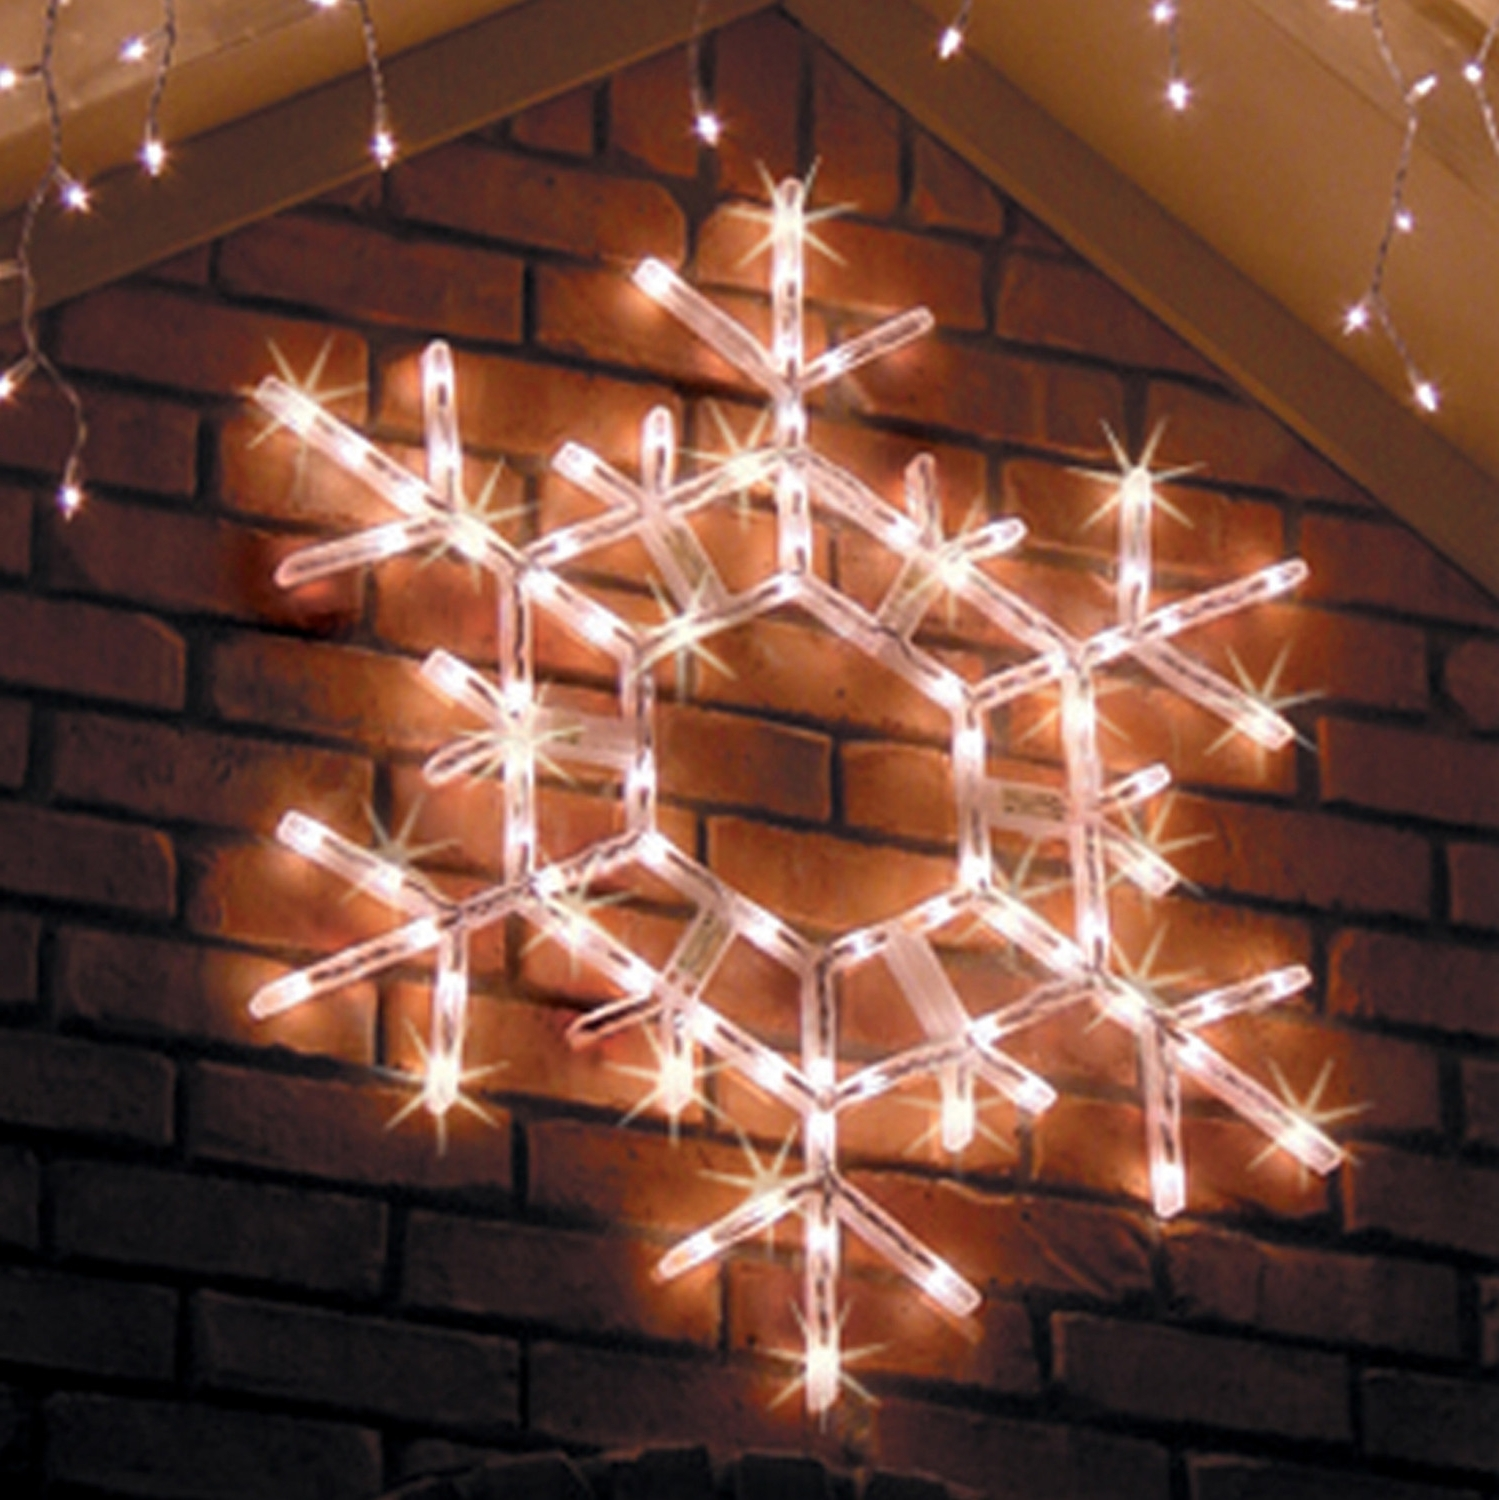 Lighted Outdoor Yard Decorations (Gallery 11 of 20)